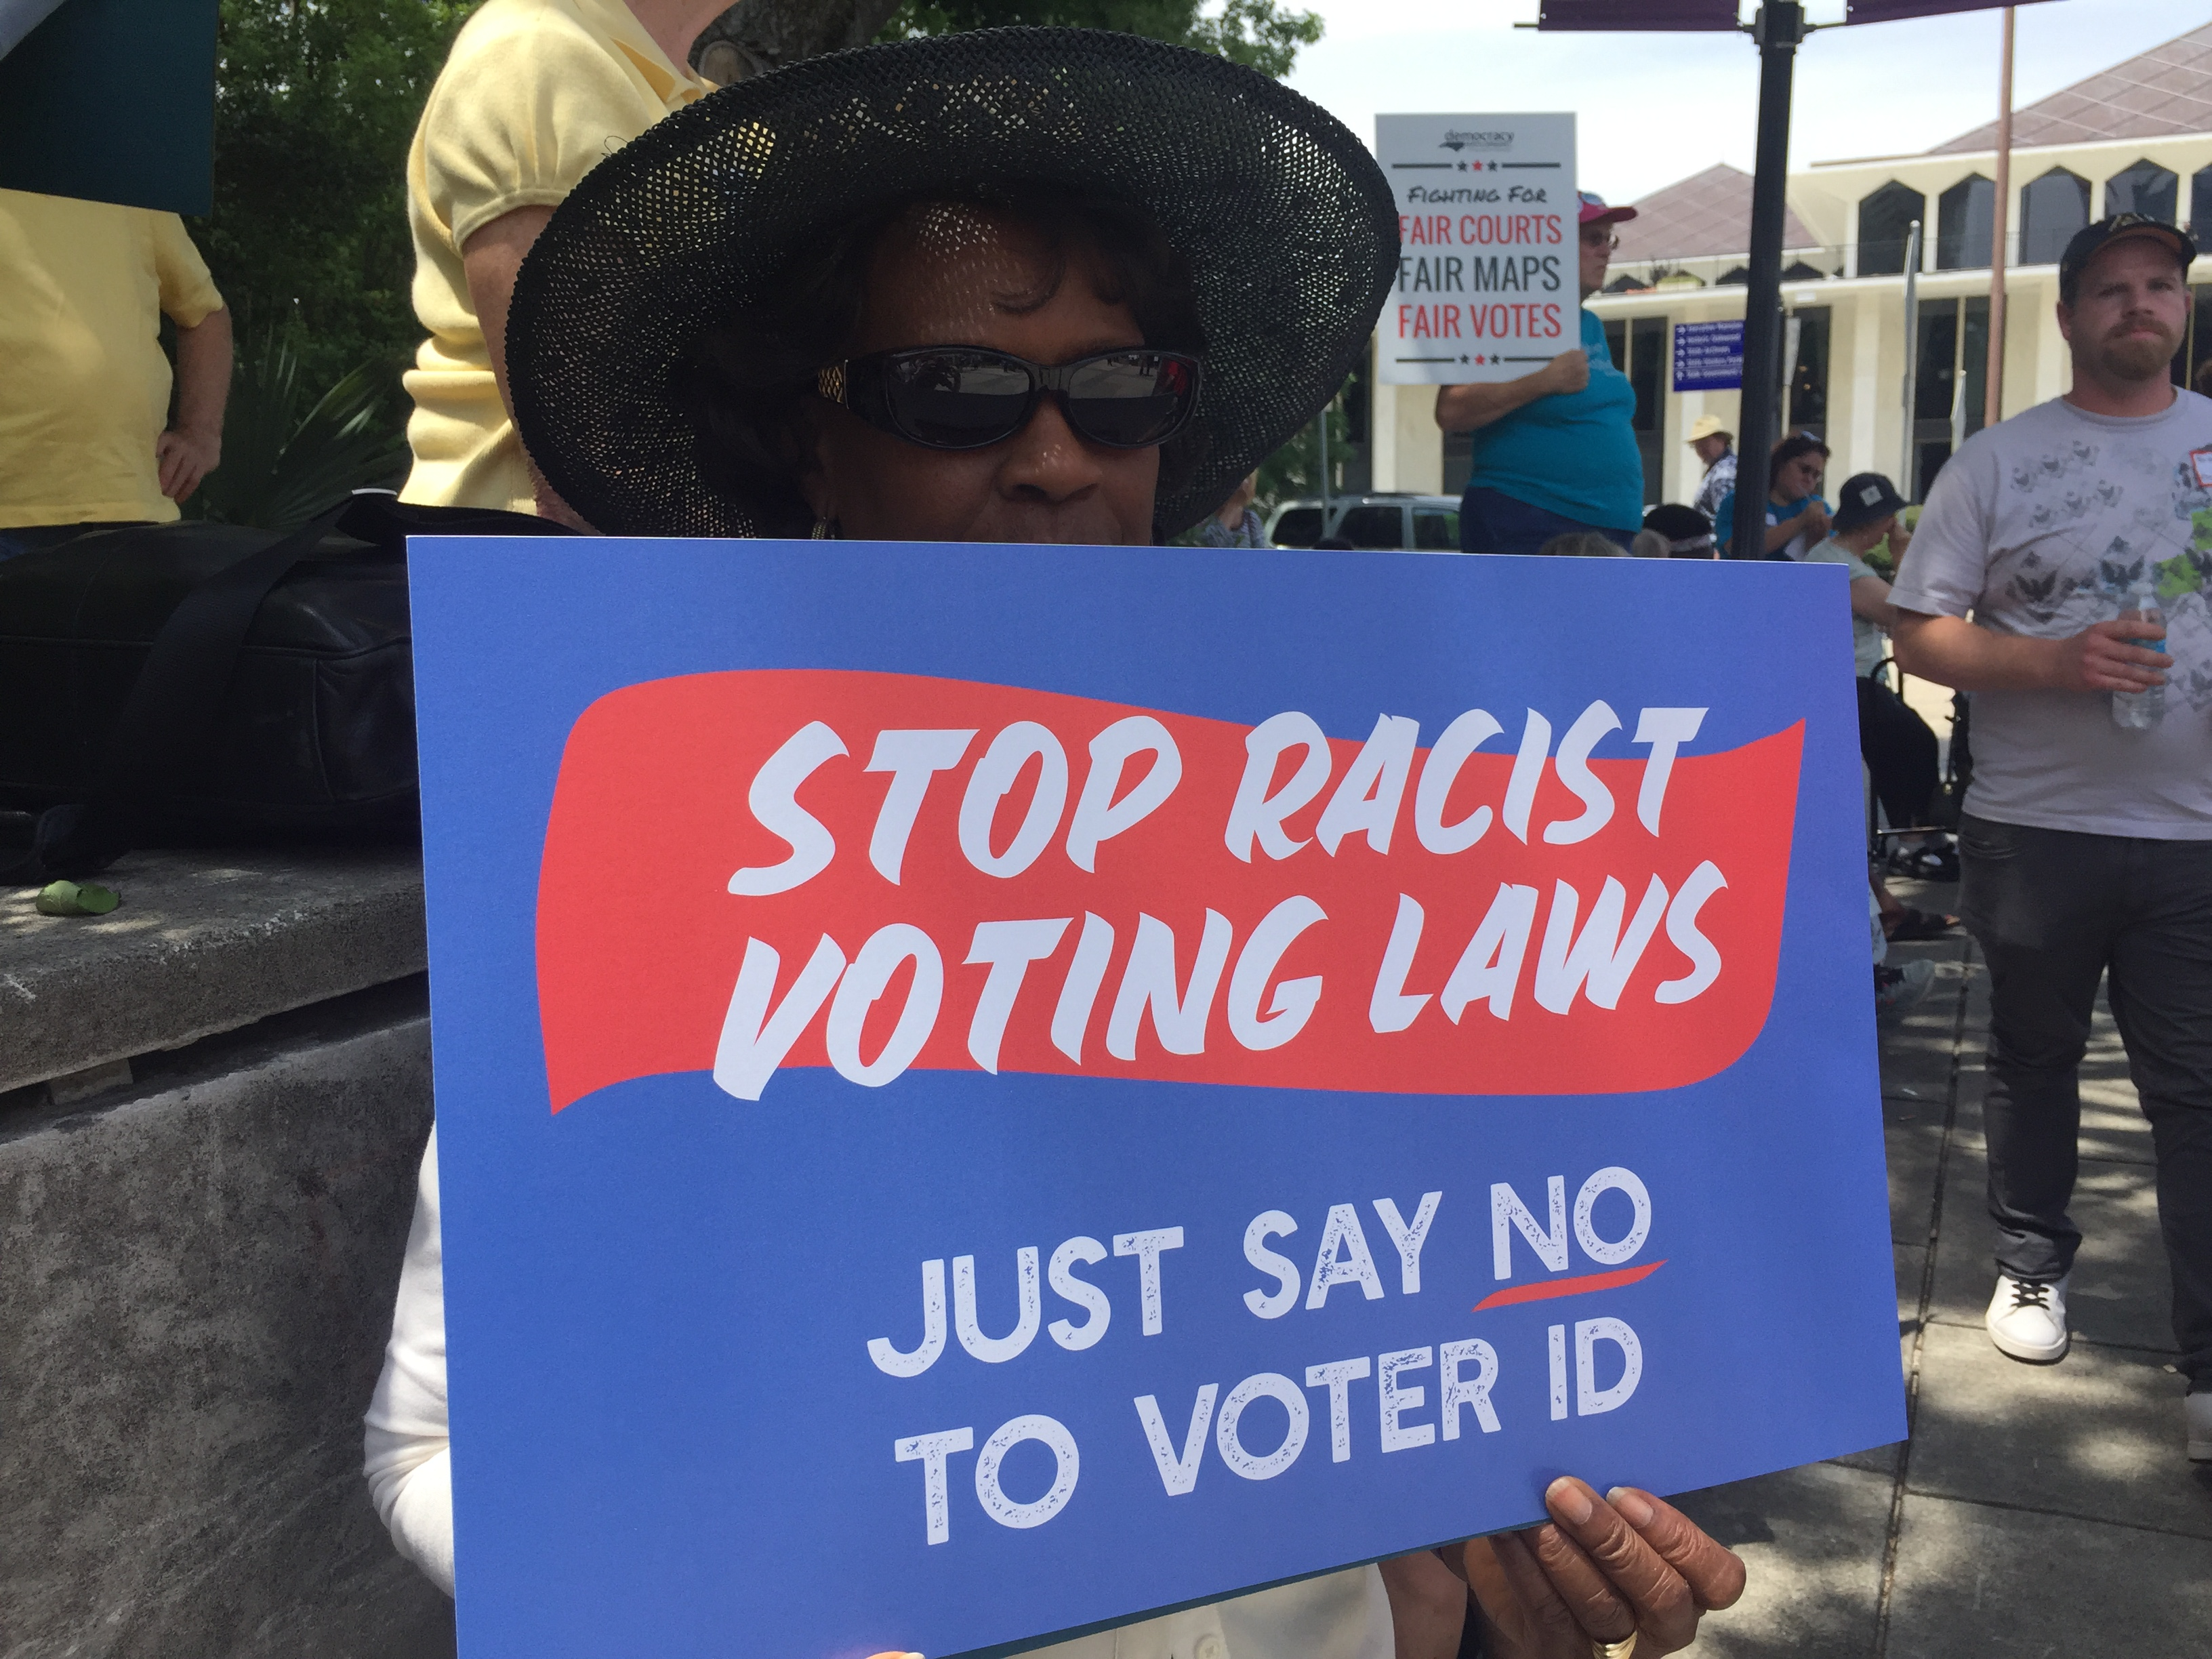 Stop racist voting laws: Just say 'no' to Voter ID